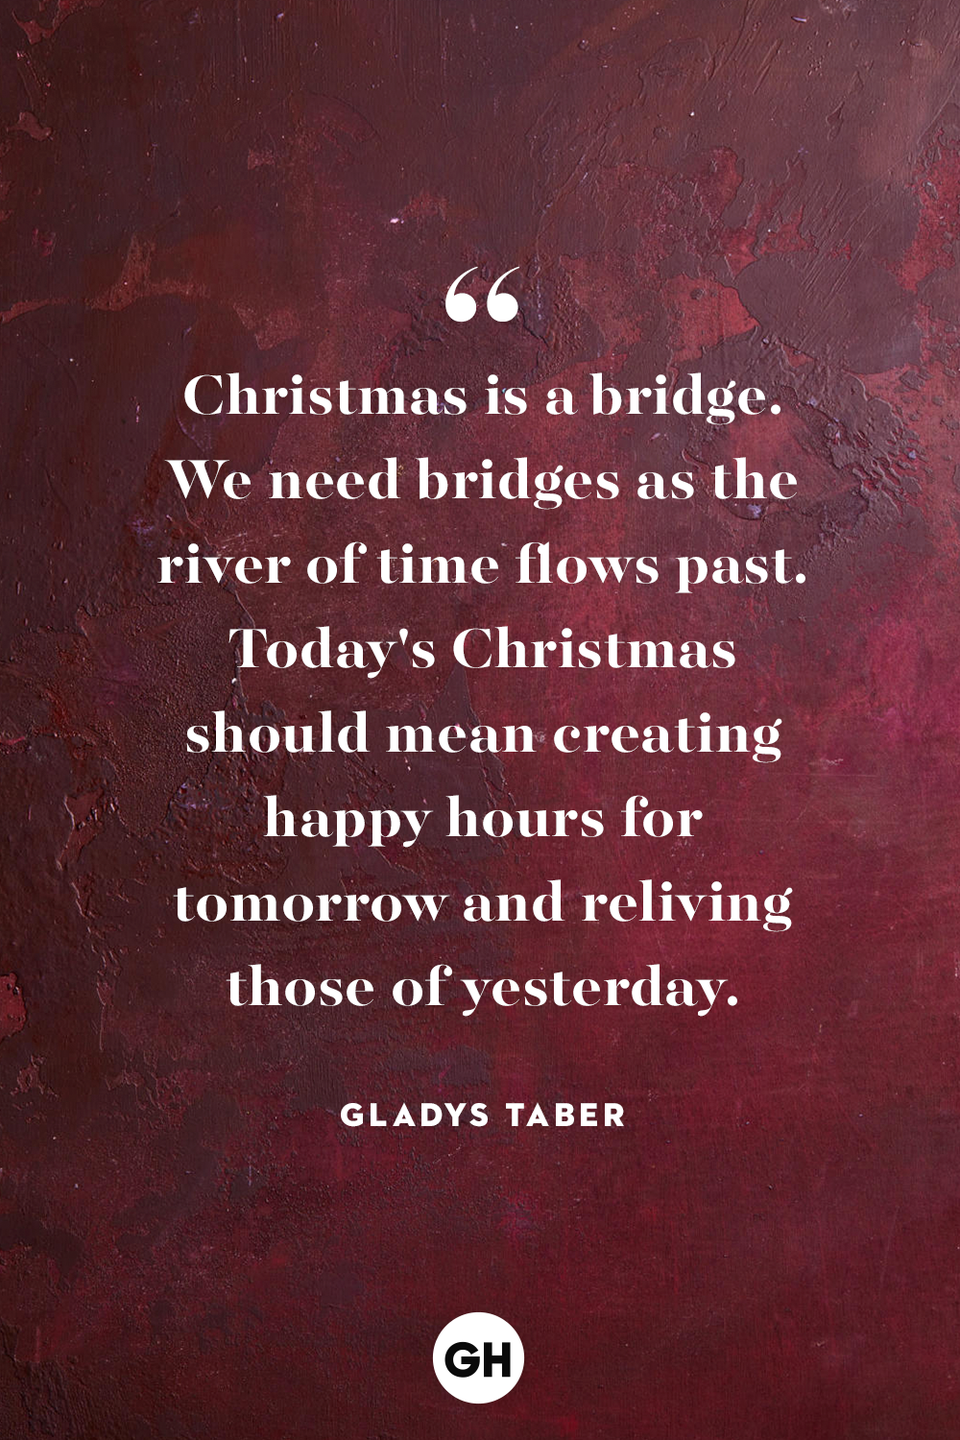 <p>Christmas is a bridge. We need bridges as the river of time flows past. Today's Christmas should mean creating happy hours for tomorrow and reliving those of yesterday.</p>